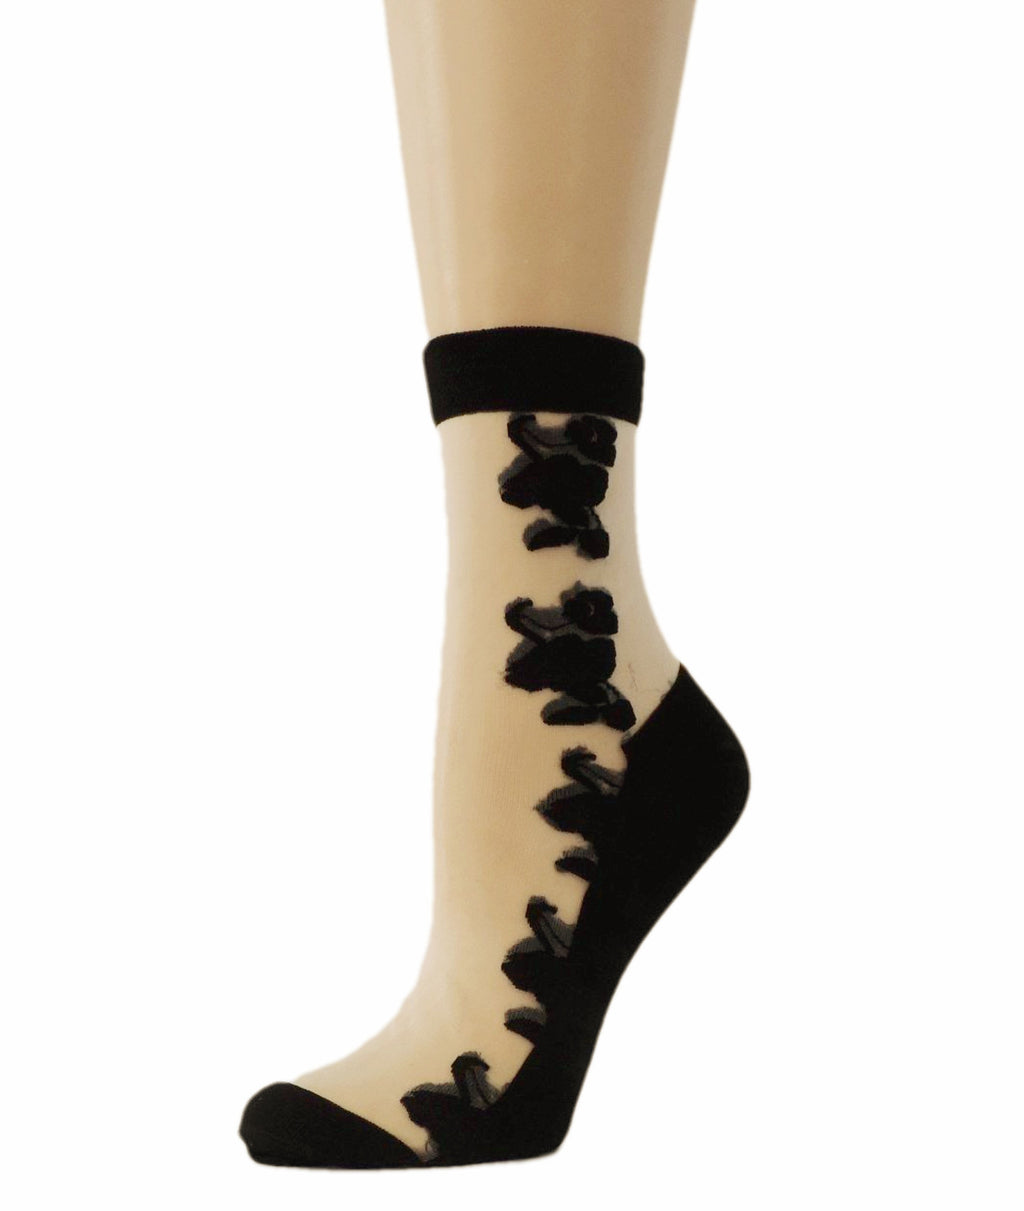 Big Black Roses Sheer Socks - Global Trendz Fashion®